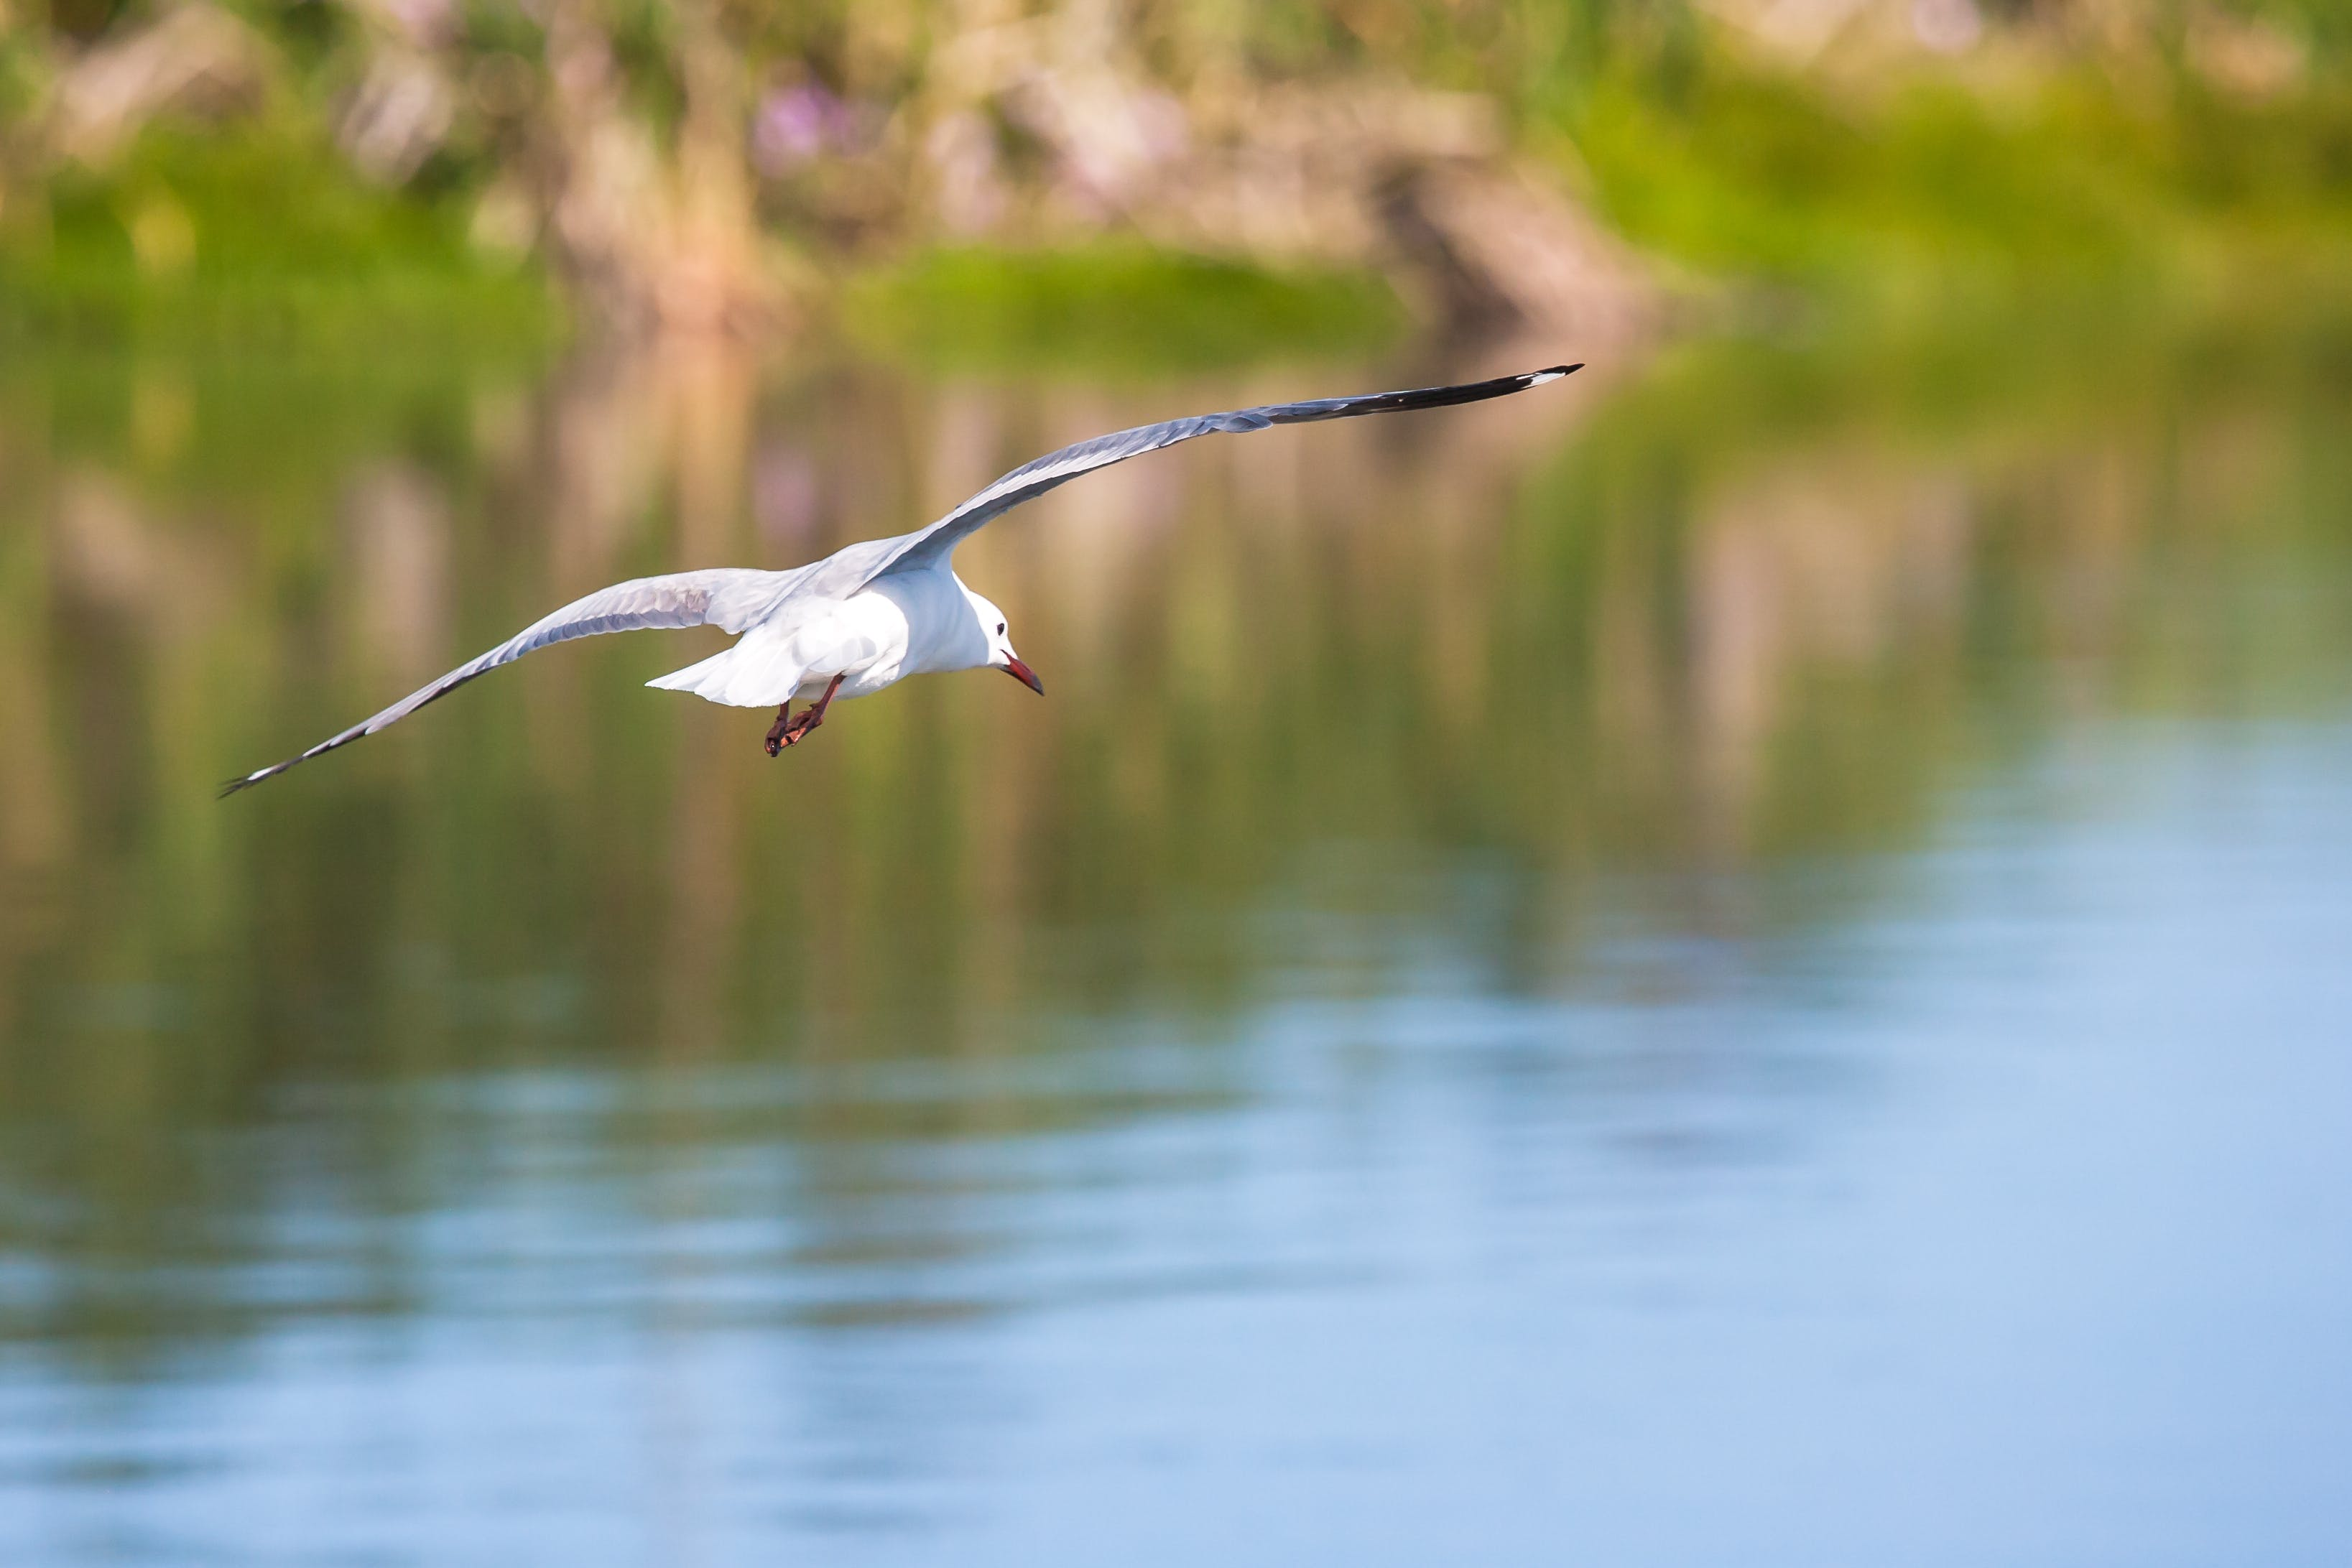 White Feathered Bird Flying Above Calm Body of Water